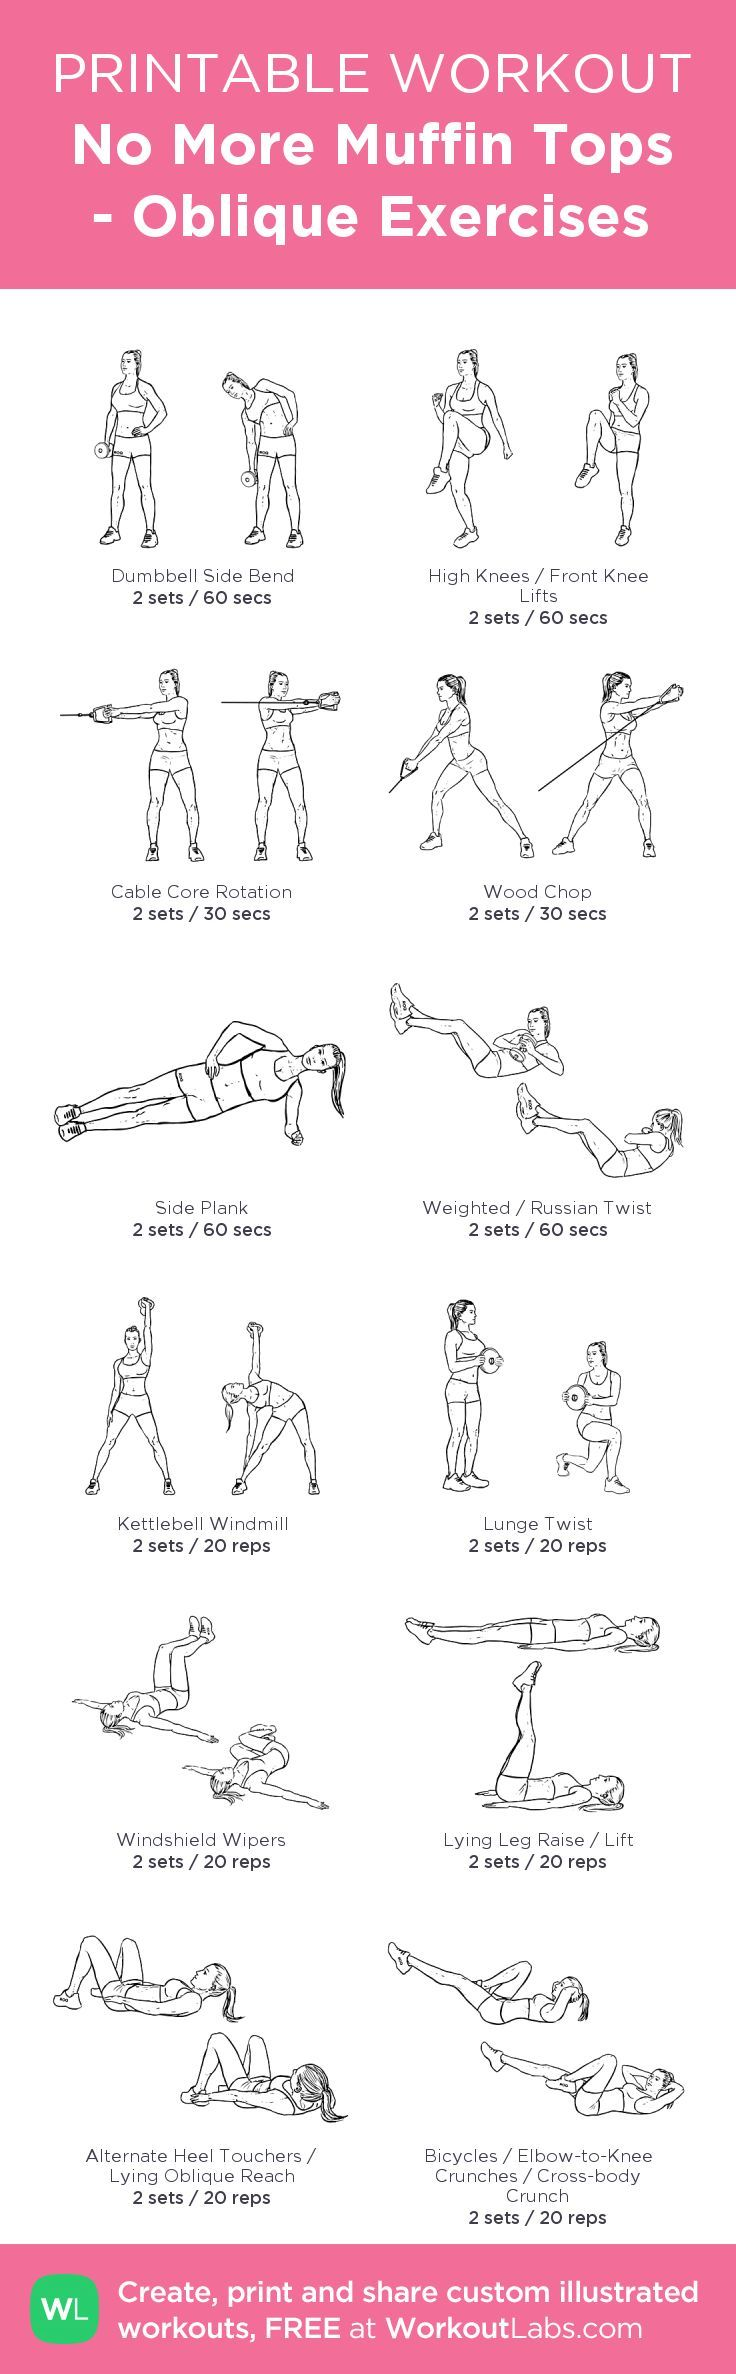 No More Muffin Tops - Oblique Exercises: my visual workout created at WorkoutLabs.com • Click through to customize and download as a FREE PDF! #customworkout: